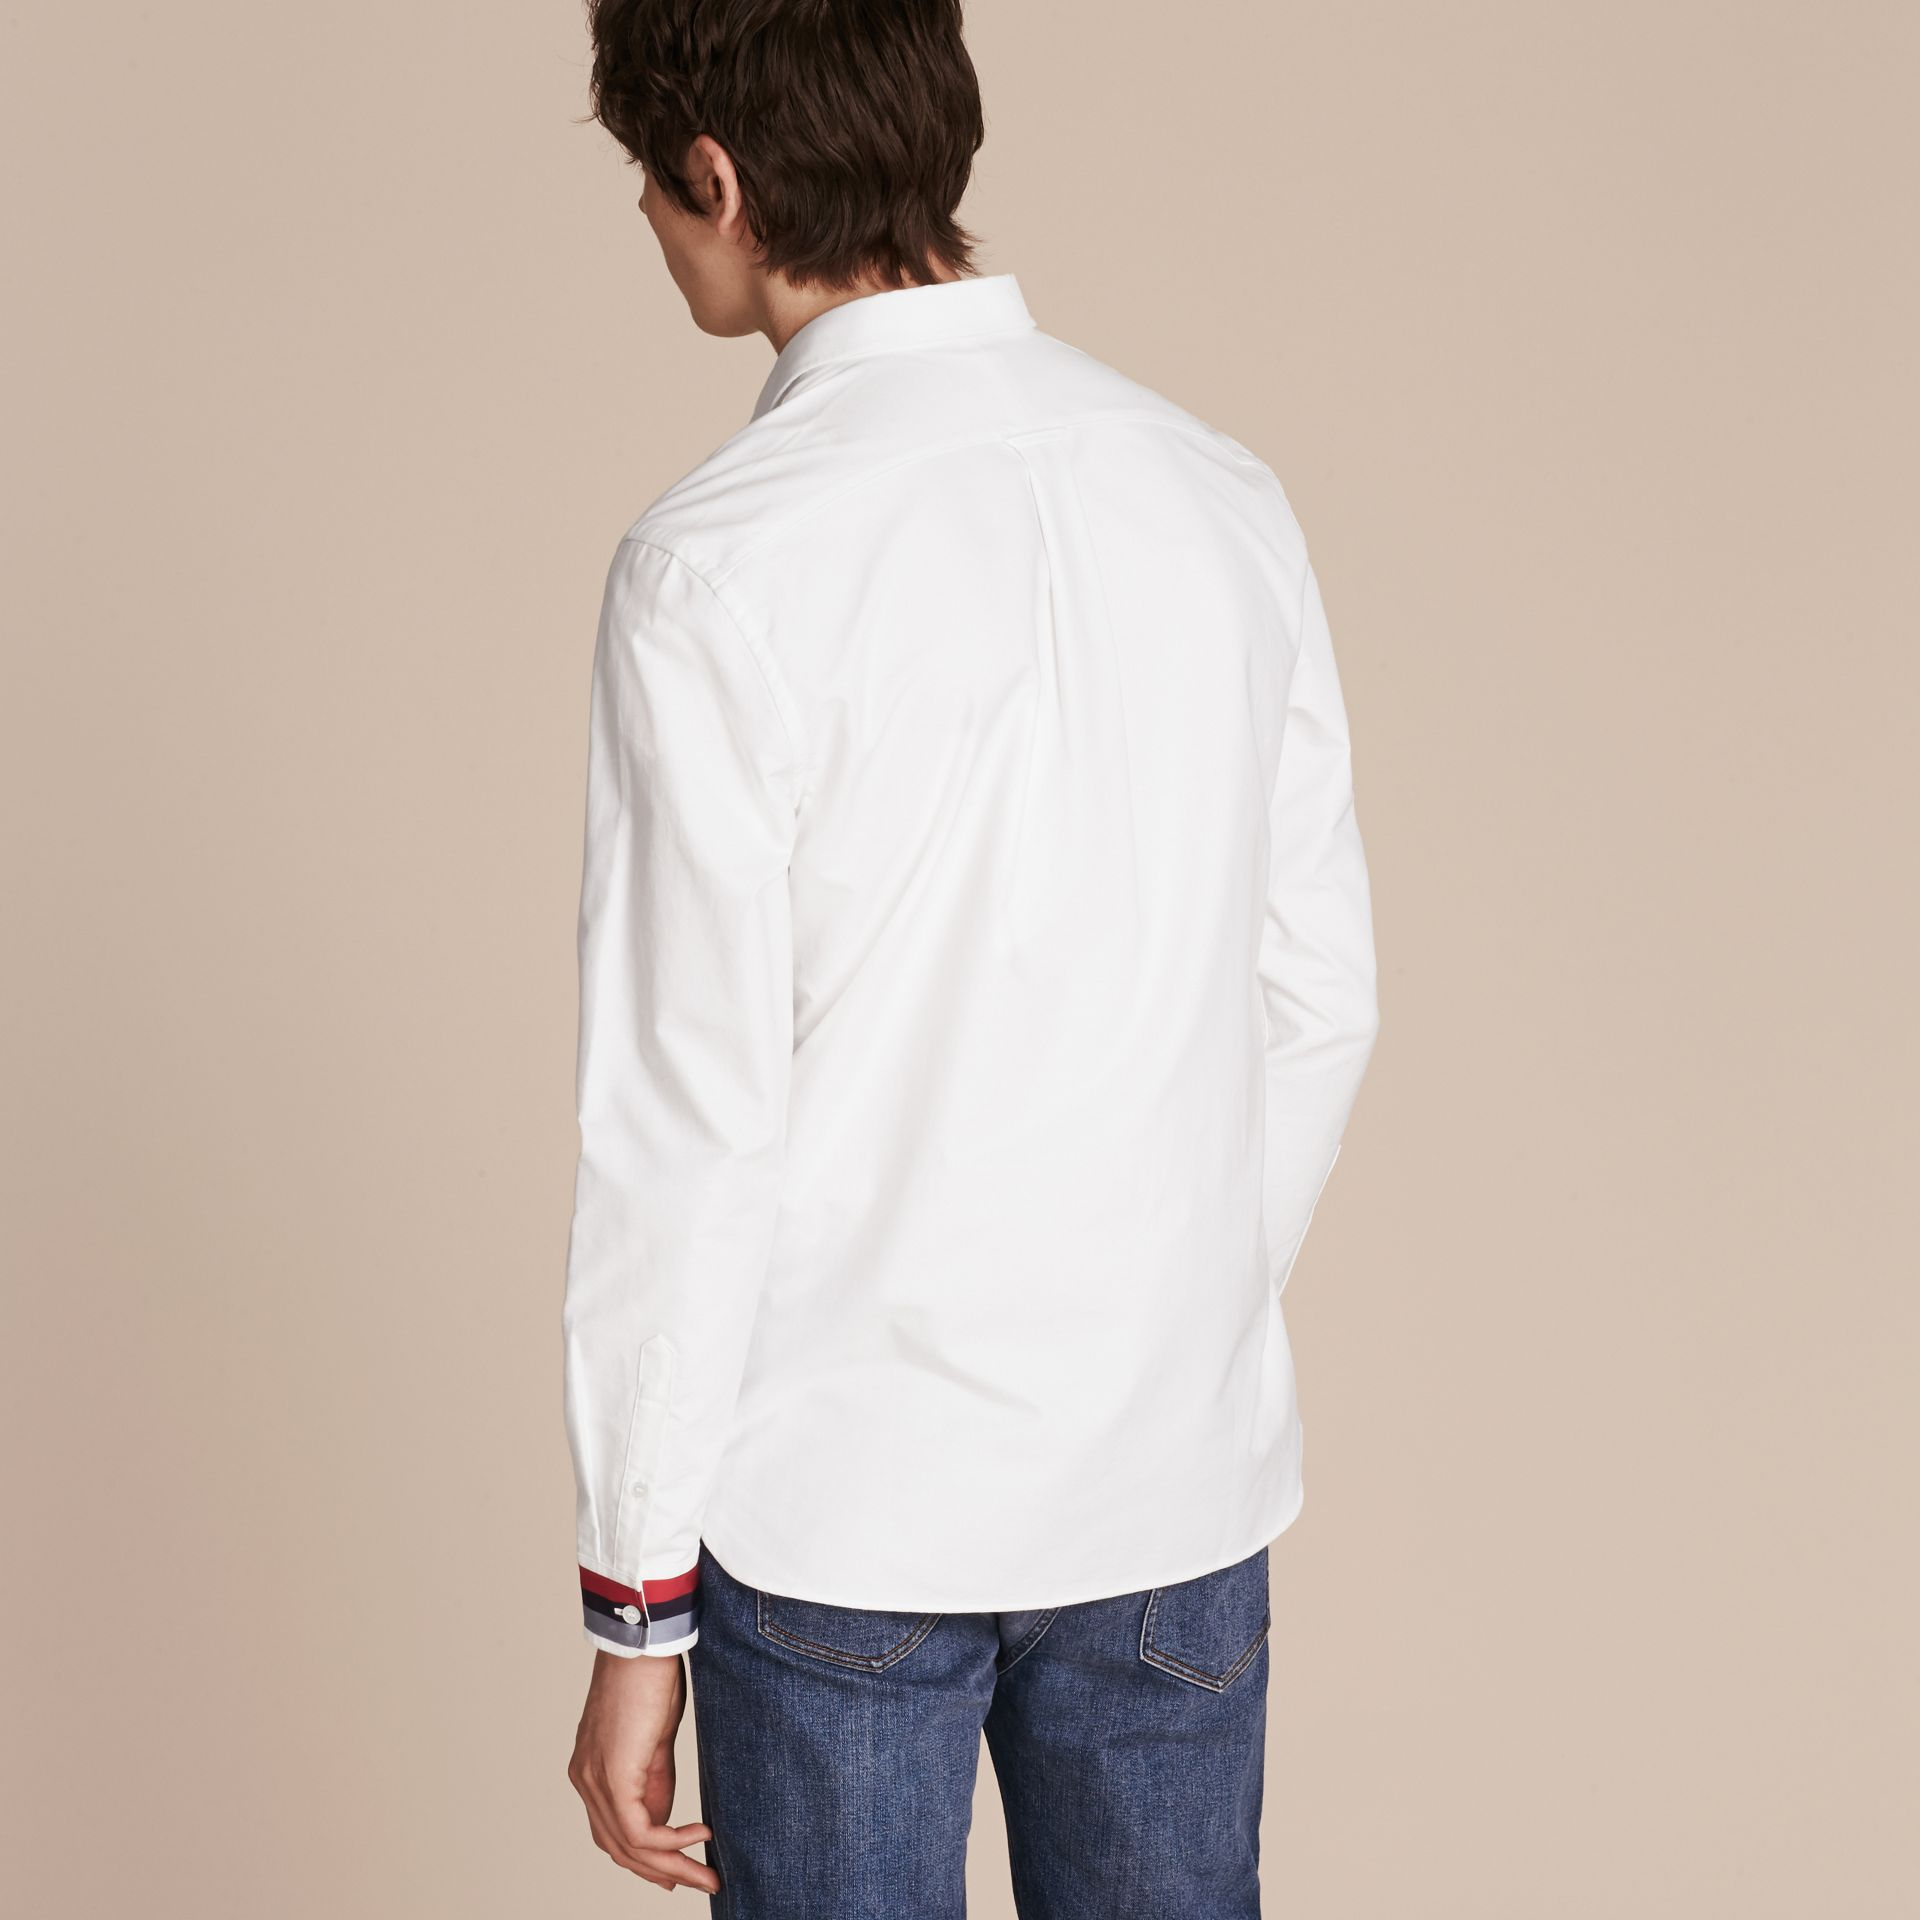 Oxford Cotton Shirt with Regimental Cuff Detail White - gallery image 3